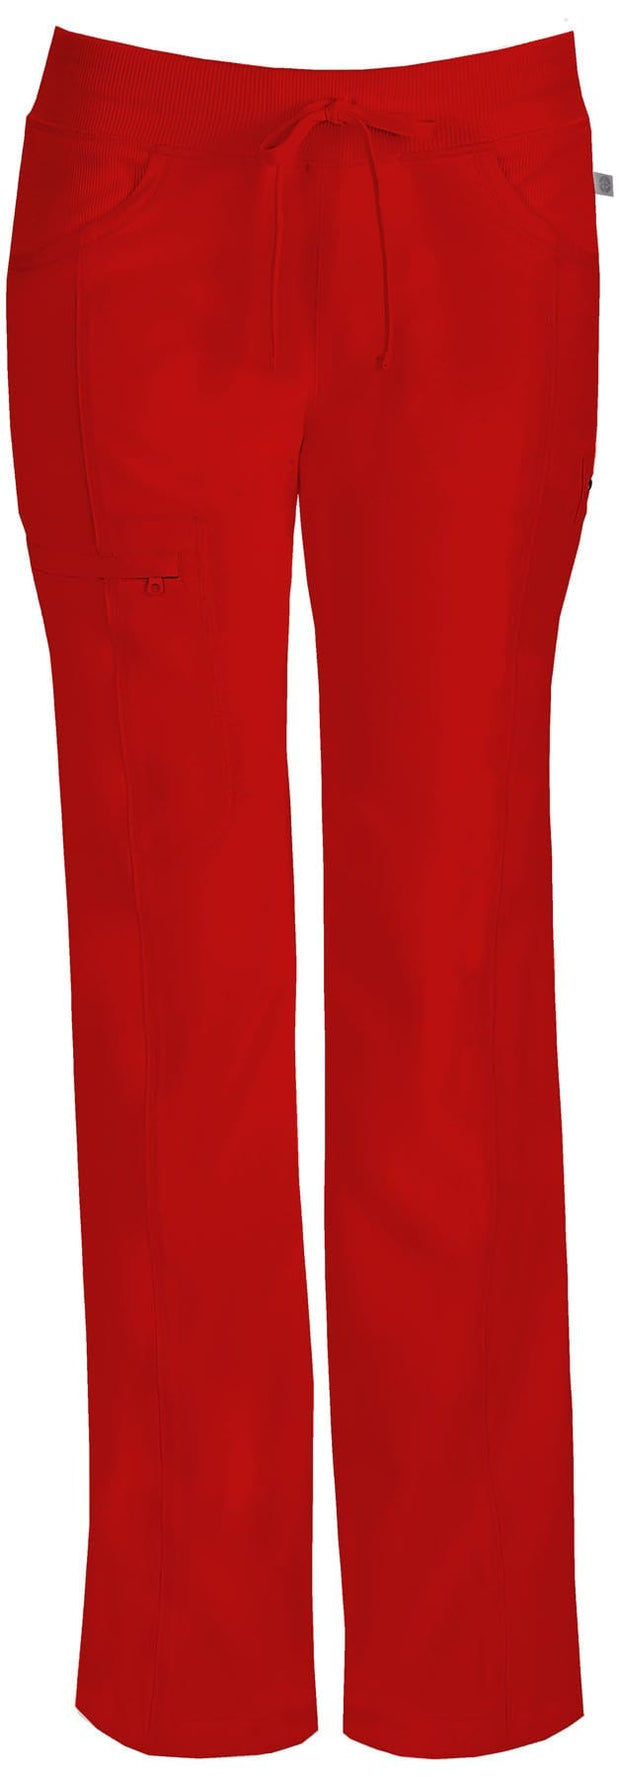 Cherokee Infinity Women's Low Rise Straight Leg Drawstring Pant (Tall) #1123AT